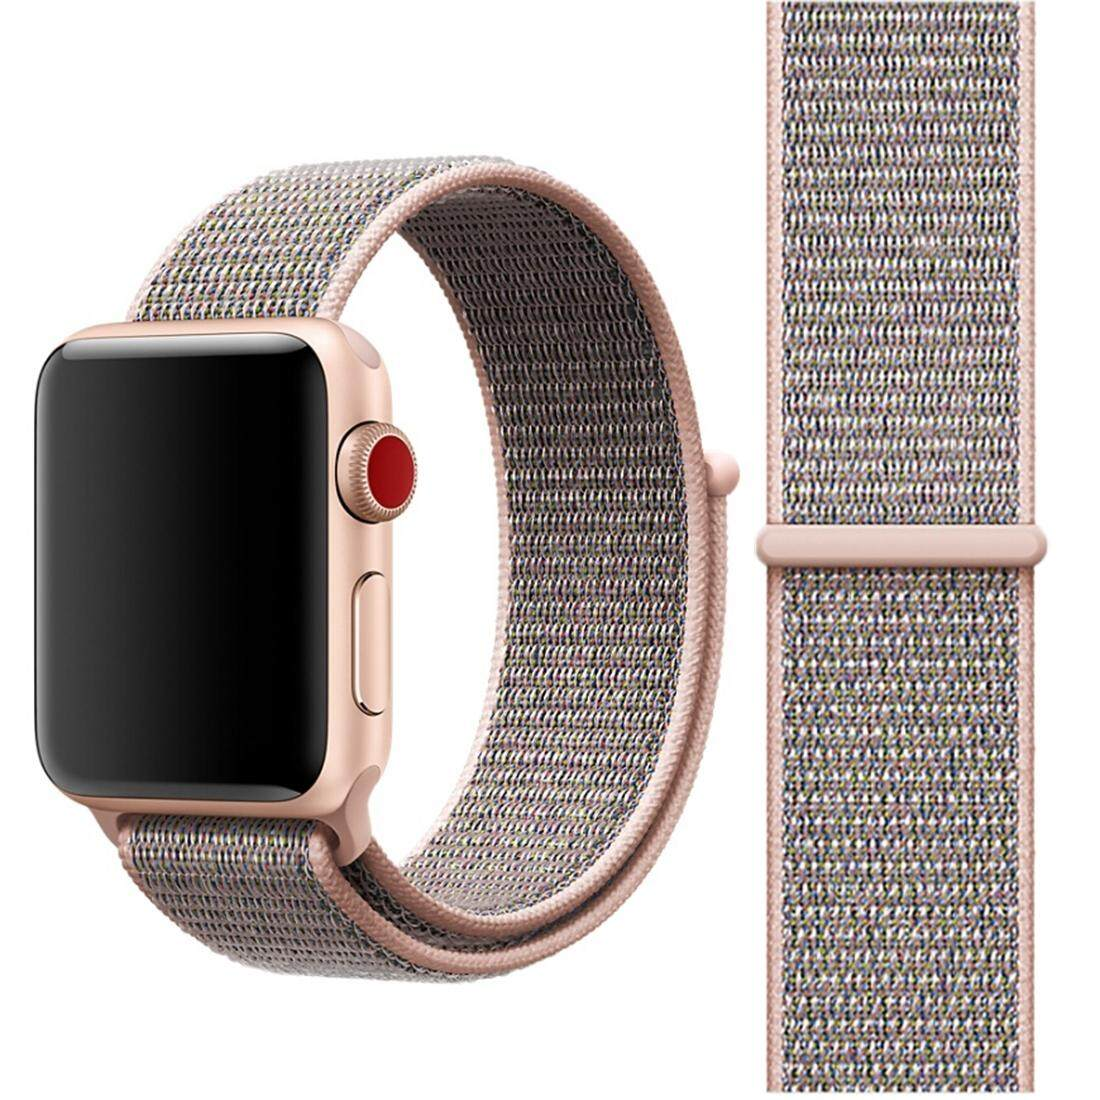 How To Buy For Apple Watch Series 3 And 2 And 1 38Mm Simple Fashion Nylon Watch Strap With Magic Stick Pink Intl